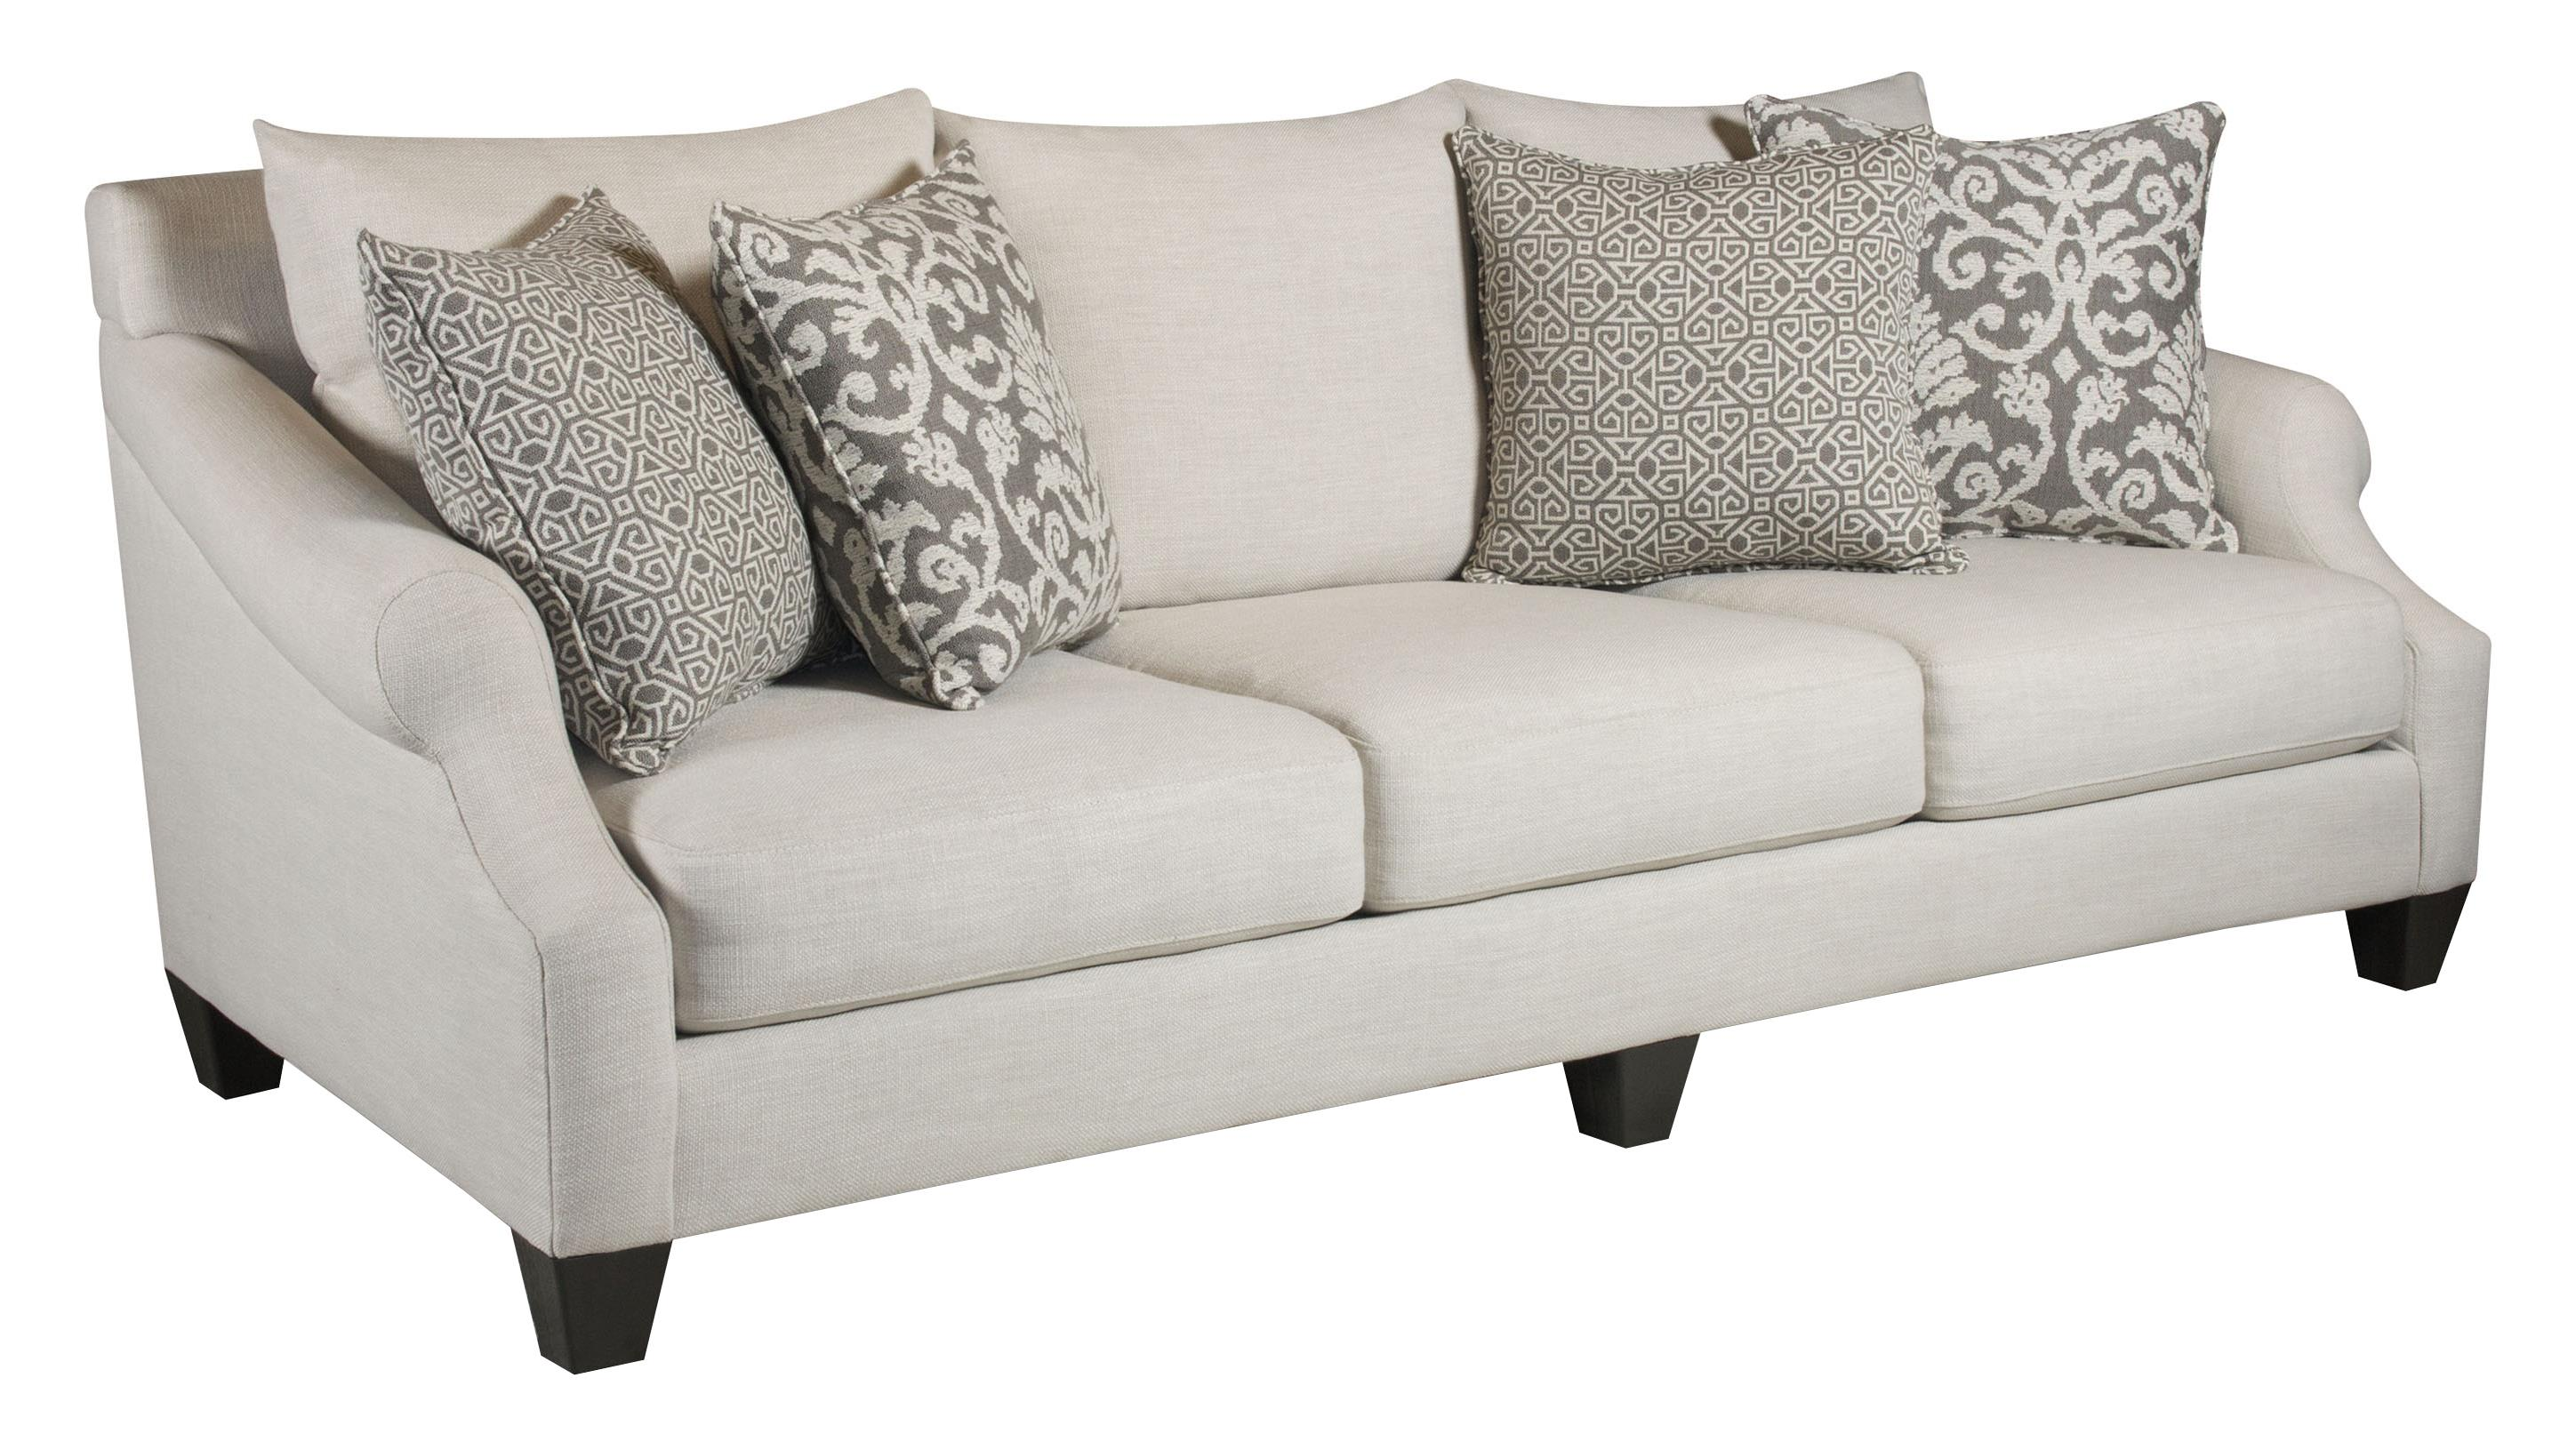 Corinthian 56A0 Sofa - Item Number: 56A3-Lavish-Cream